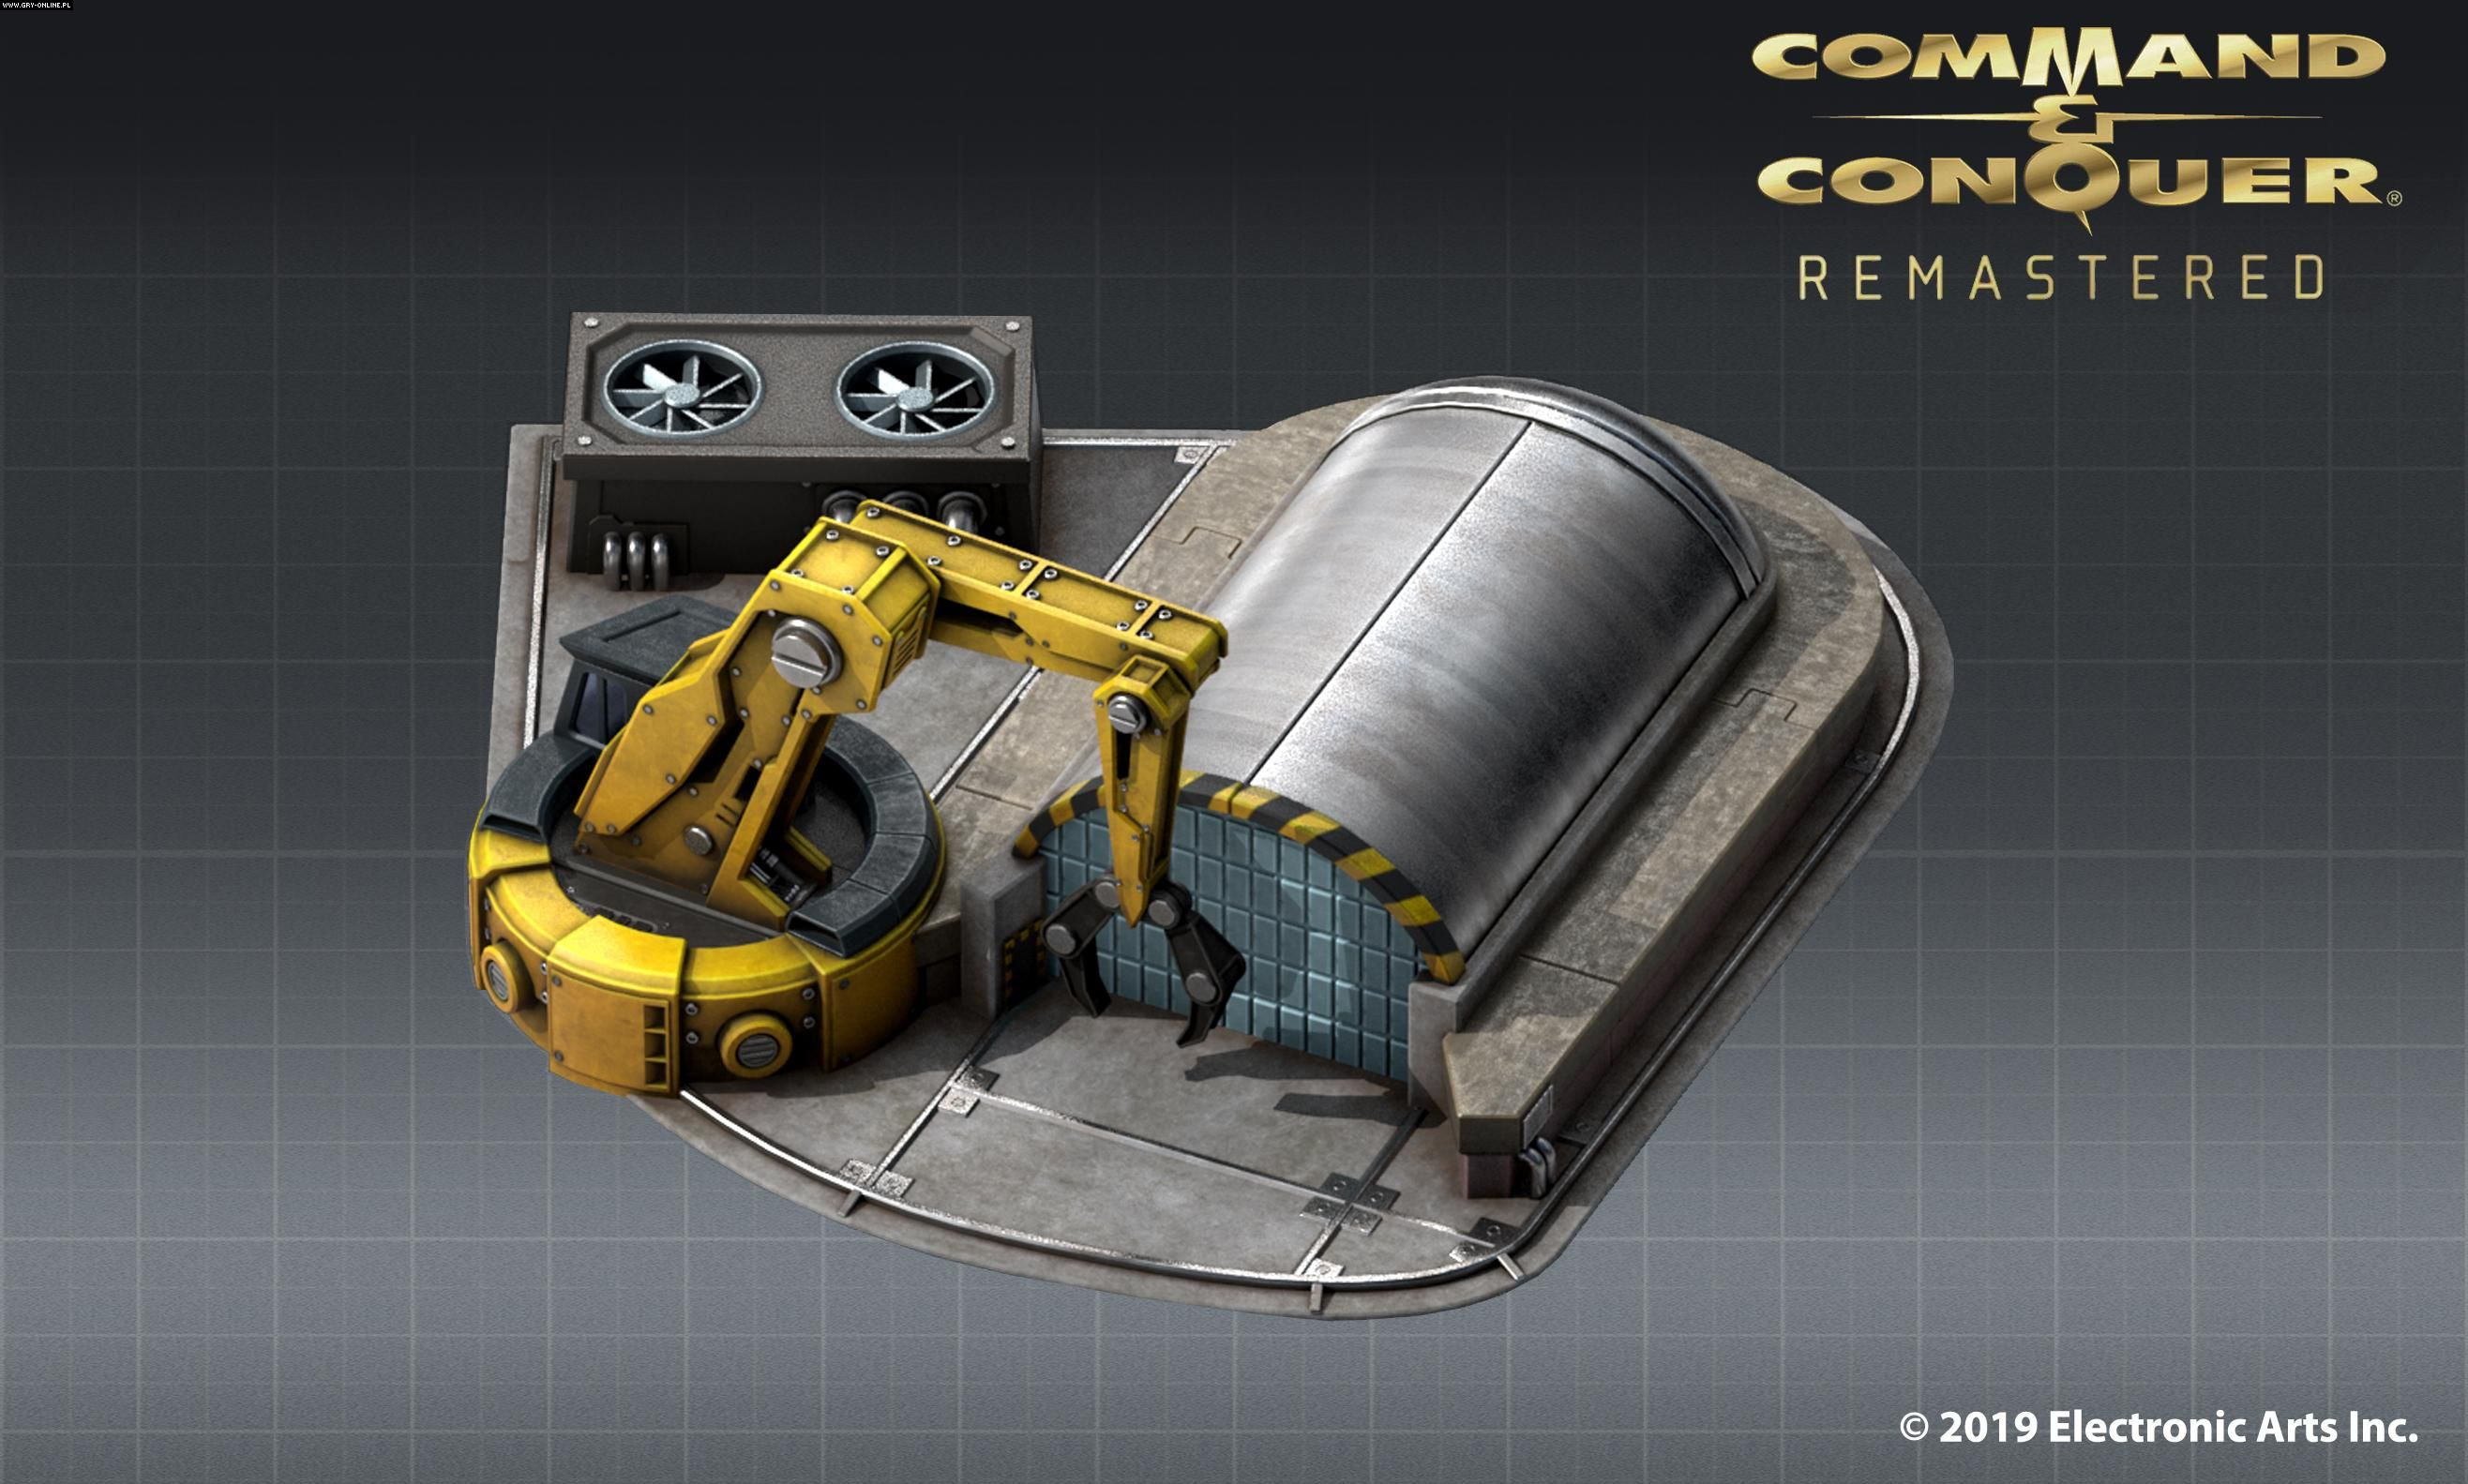 First Artwork From Command & Conquer Remastered